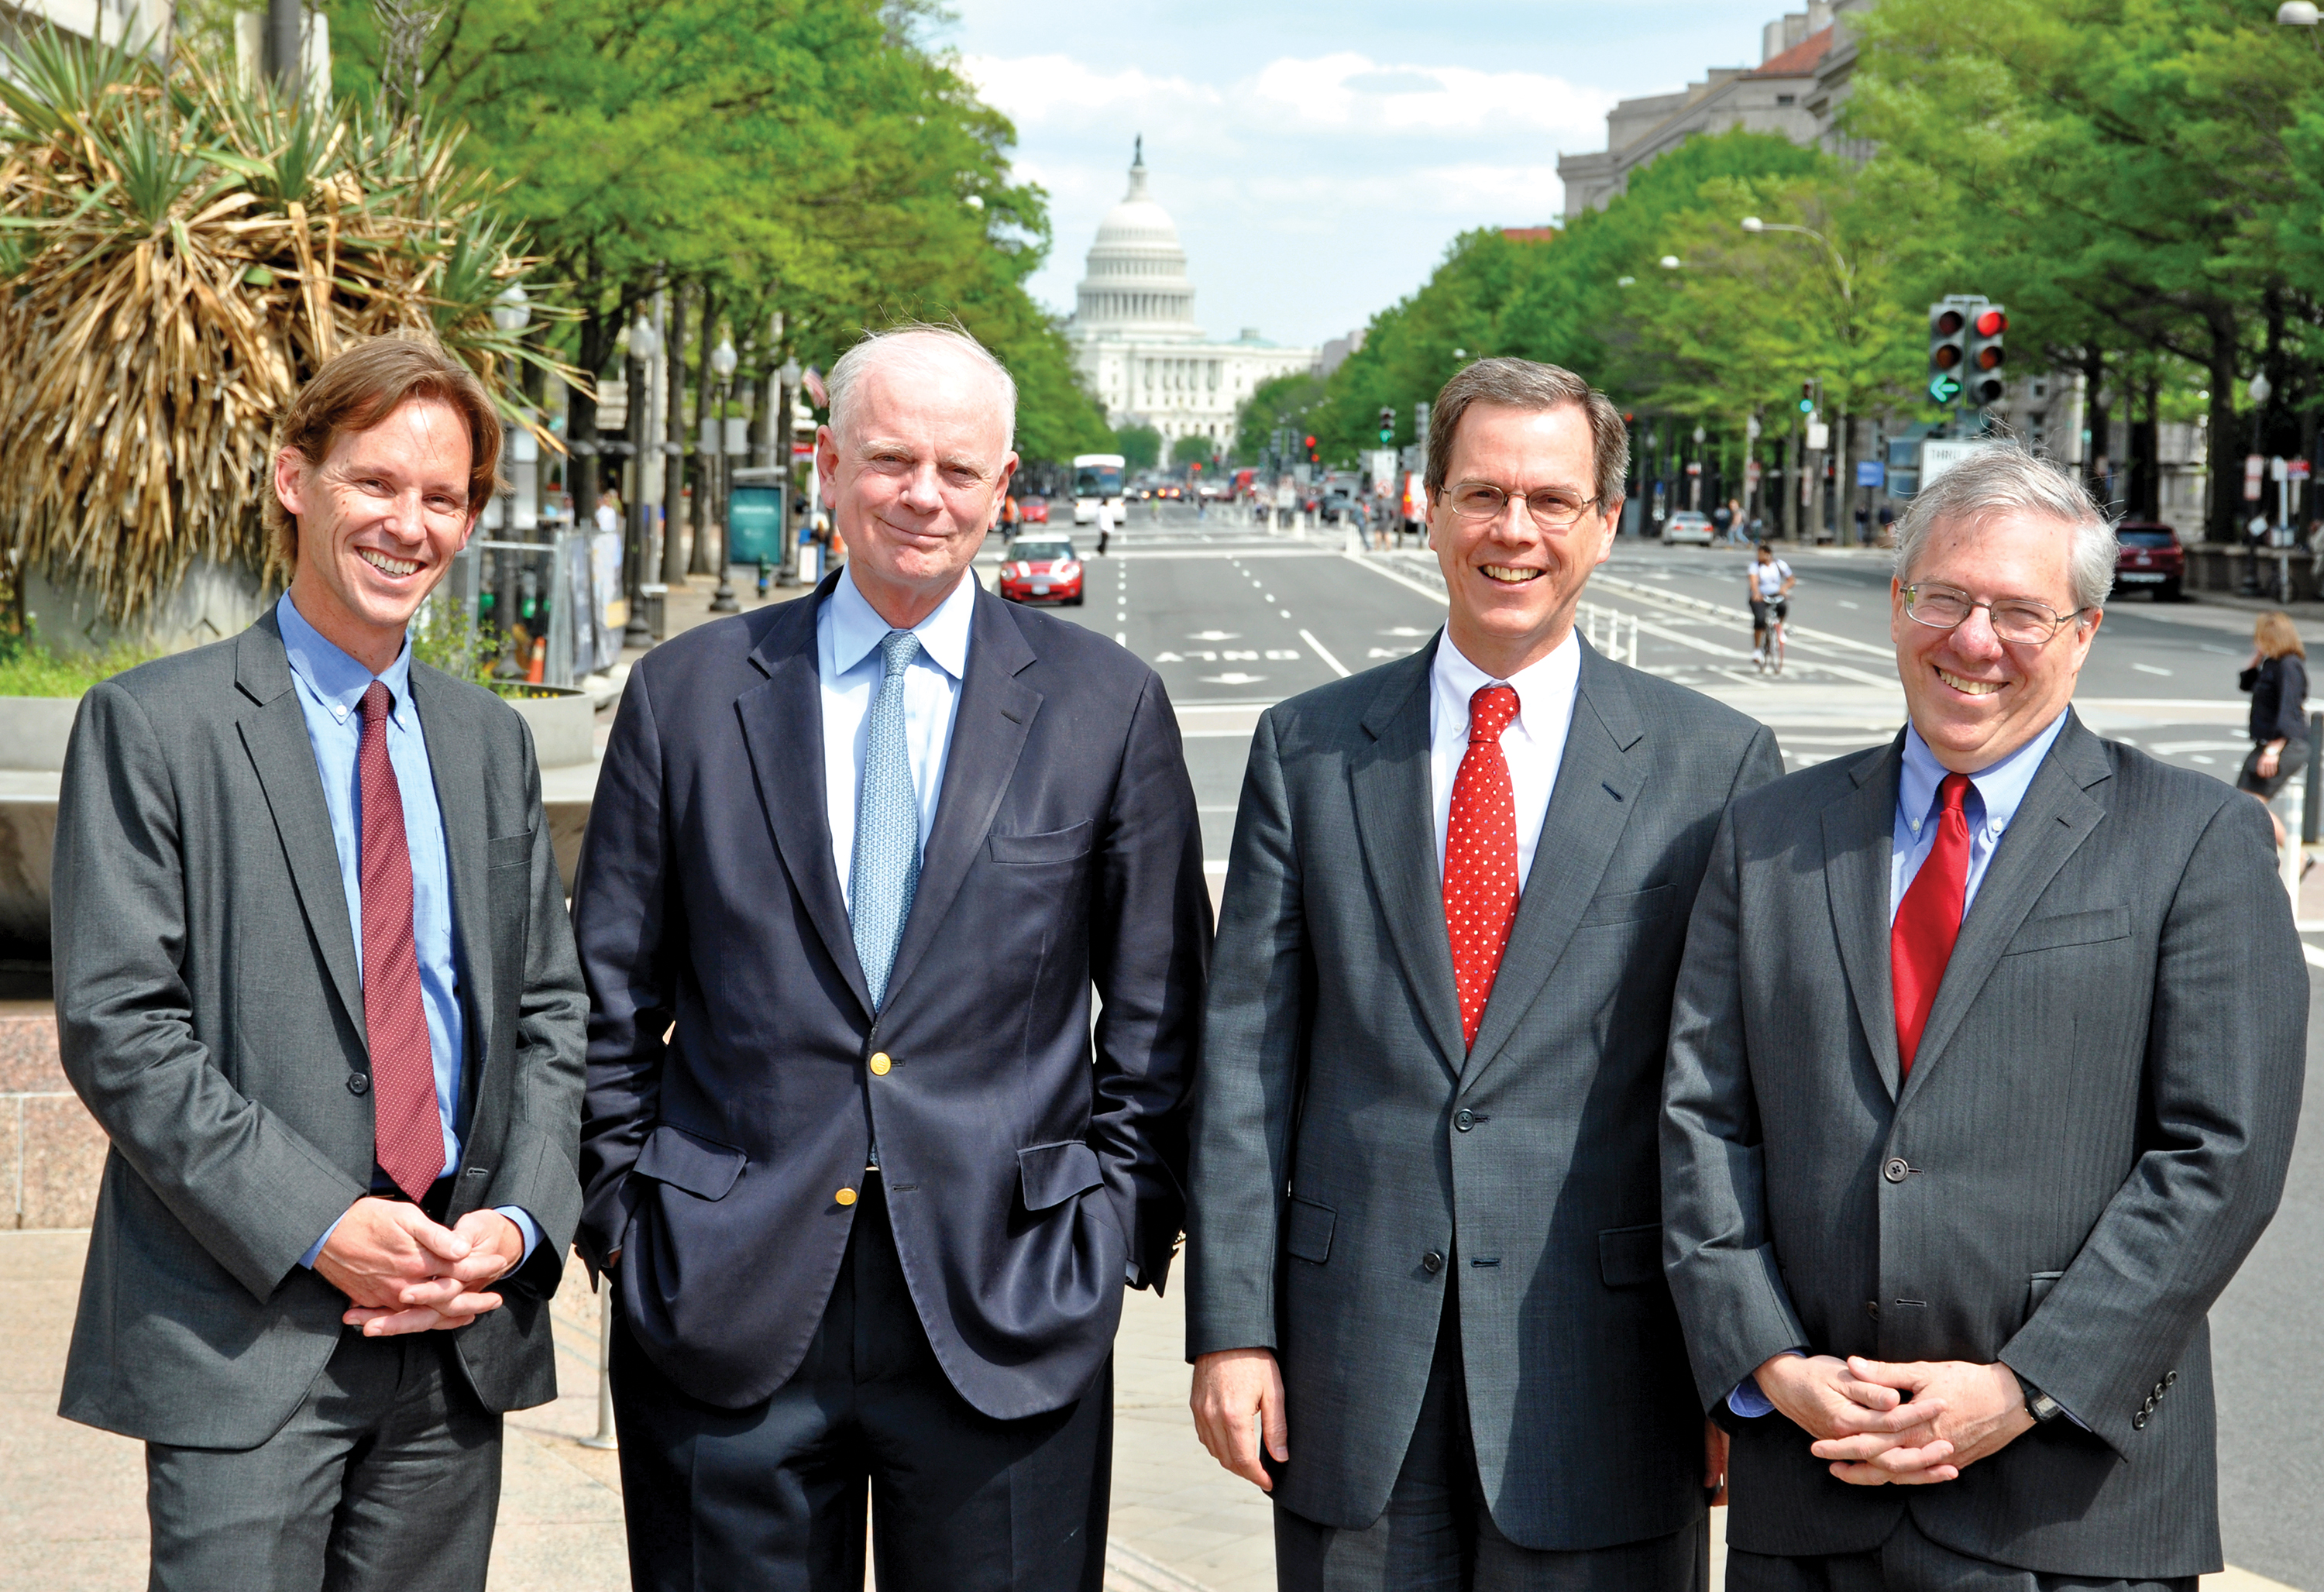 Four Wesleyan graduates collaborate on USAID's  crucial water projects, just down the avenue from the White House: John Pasch '93, Christian Holmes '68, Charles North '82, and Eric Postel '77.